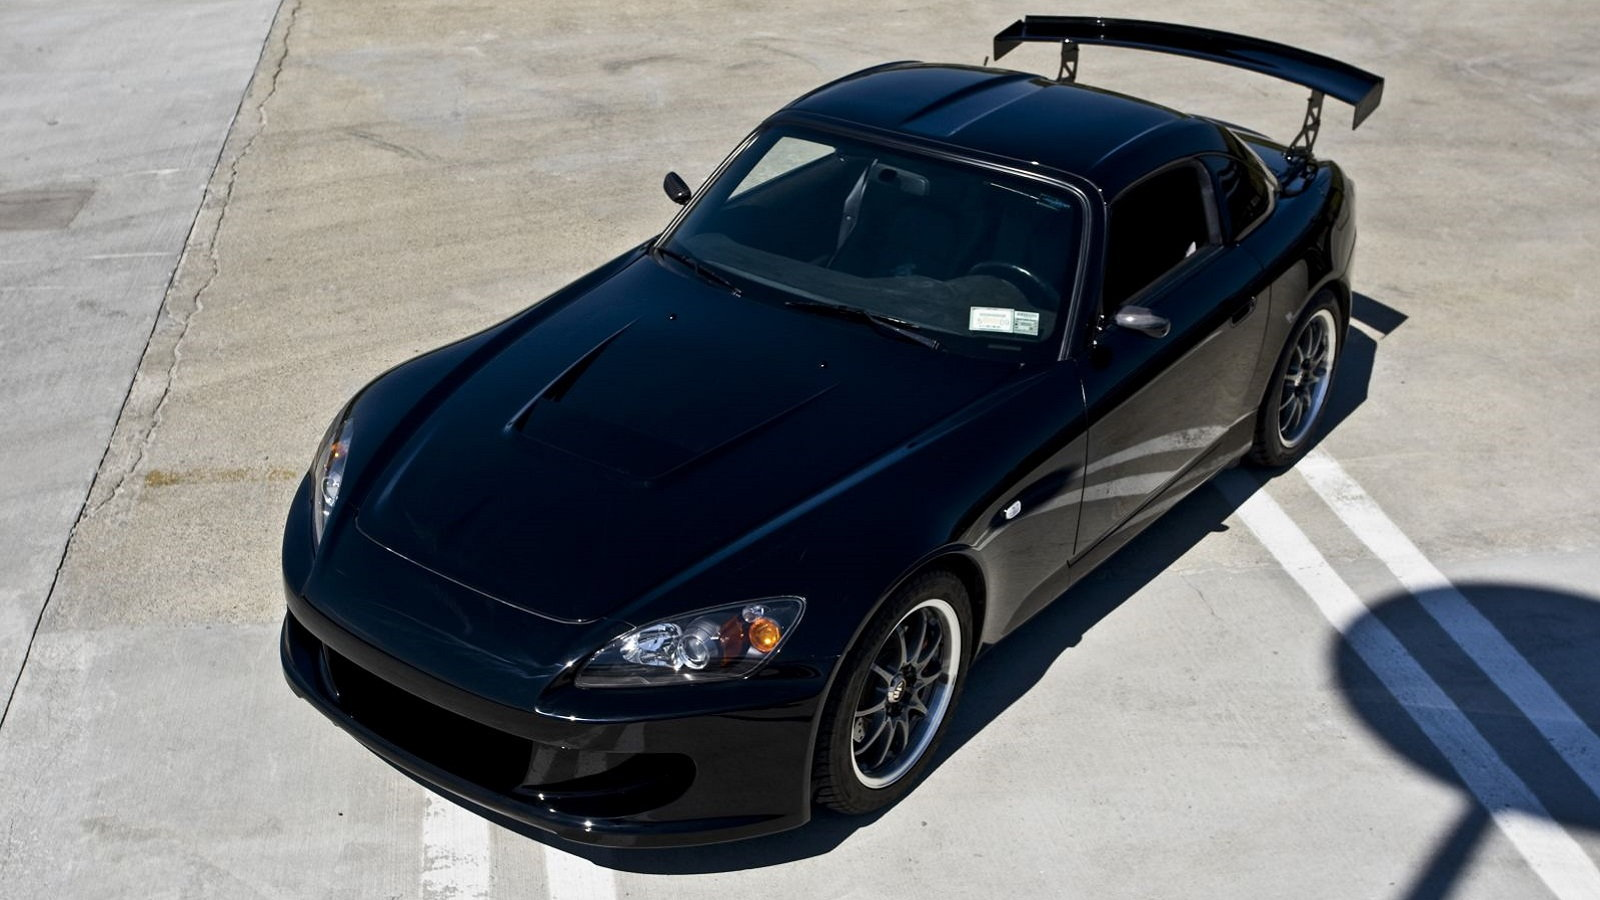 Honda S2000: To Wing or Not to Wing?